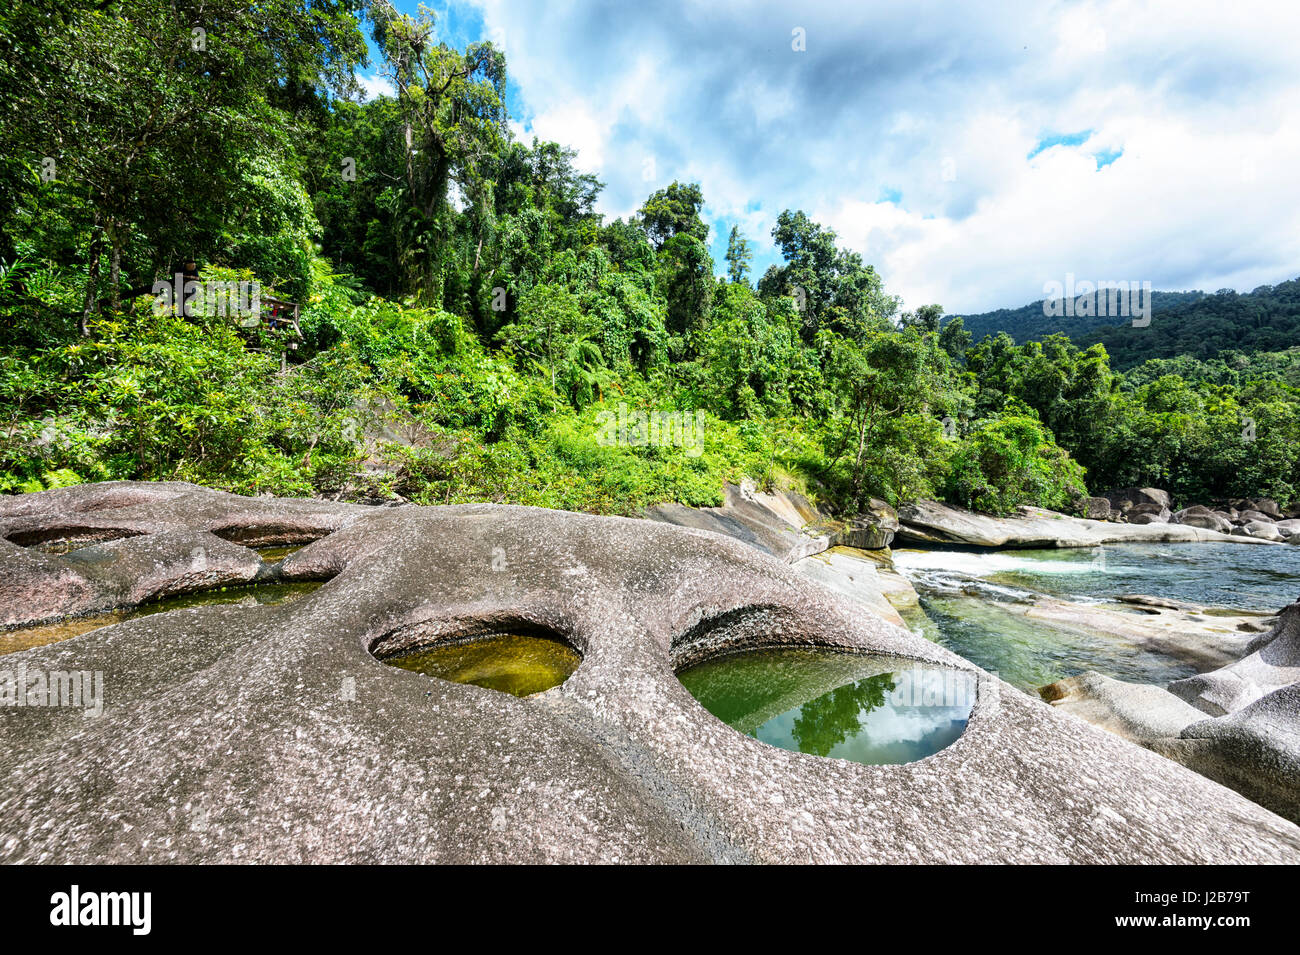 Babinda Boulders, a scenic popular tourist attraction and swimming spot, near Cairns, Queensland, QLD, Australia - Stock Image